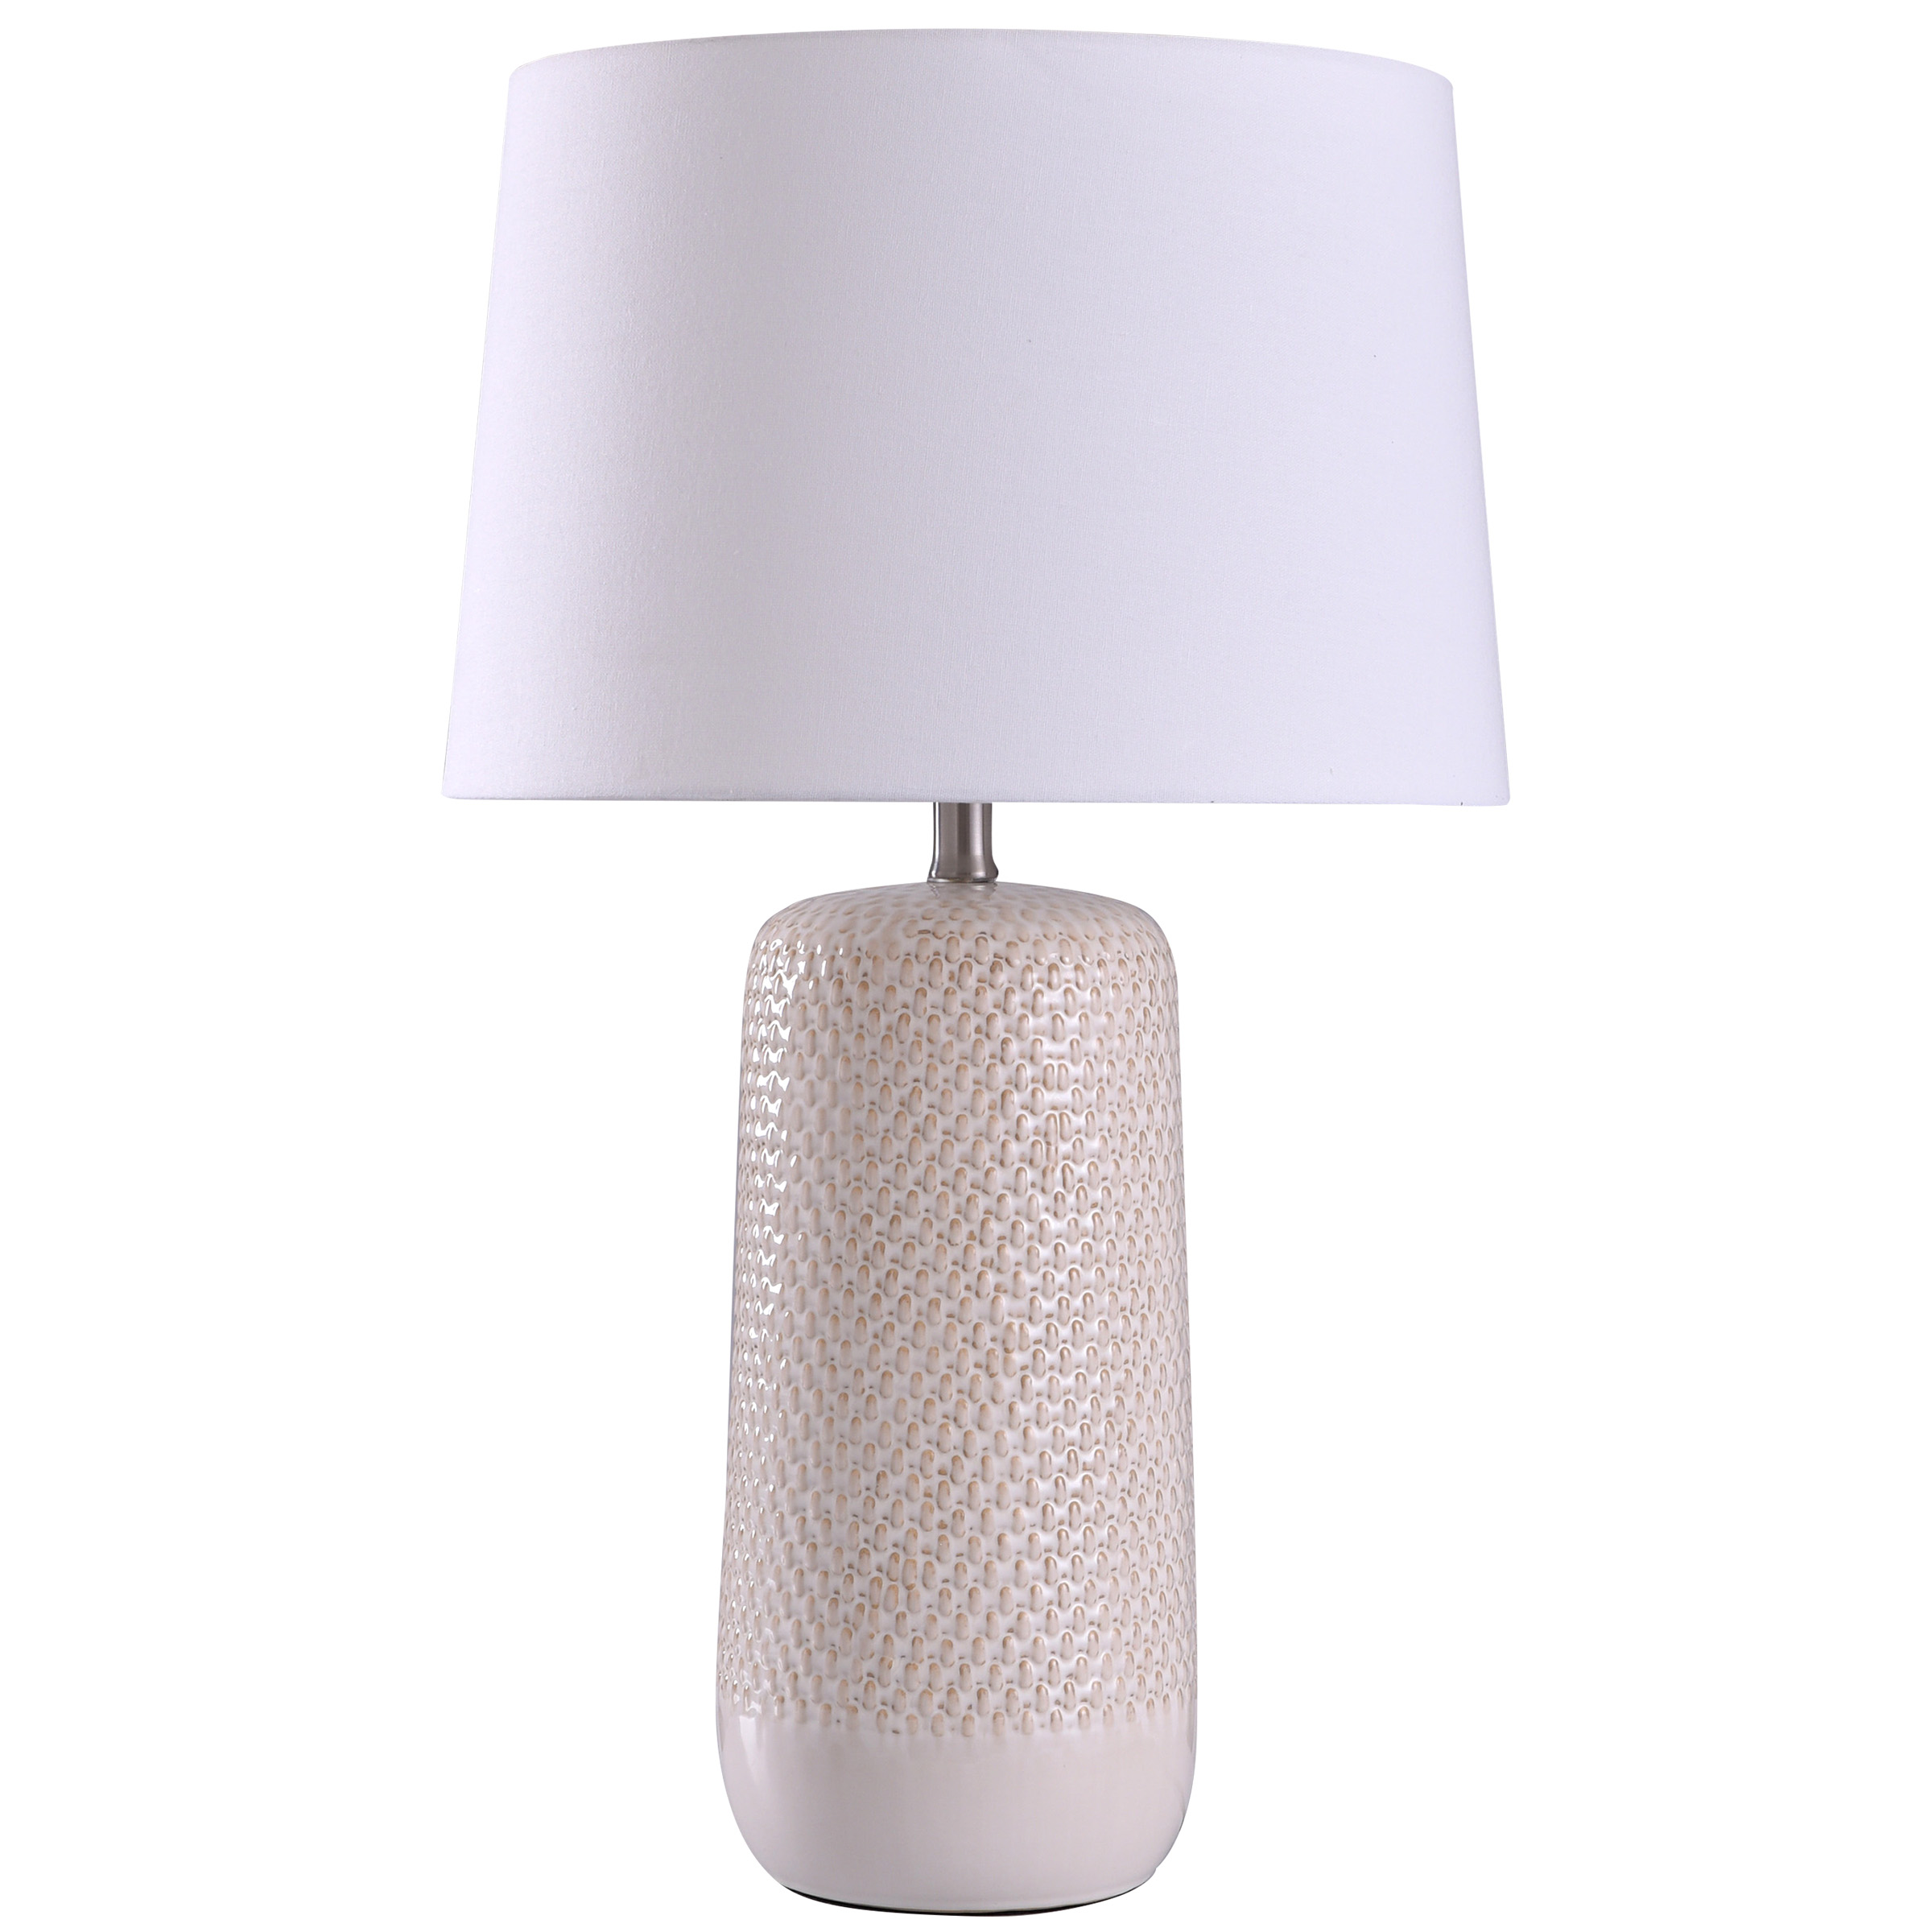 Galey Woven Wicker Textured Design Table Lamp With Tapered Drum Shade Walmart Com Walmart Com